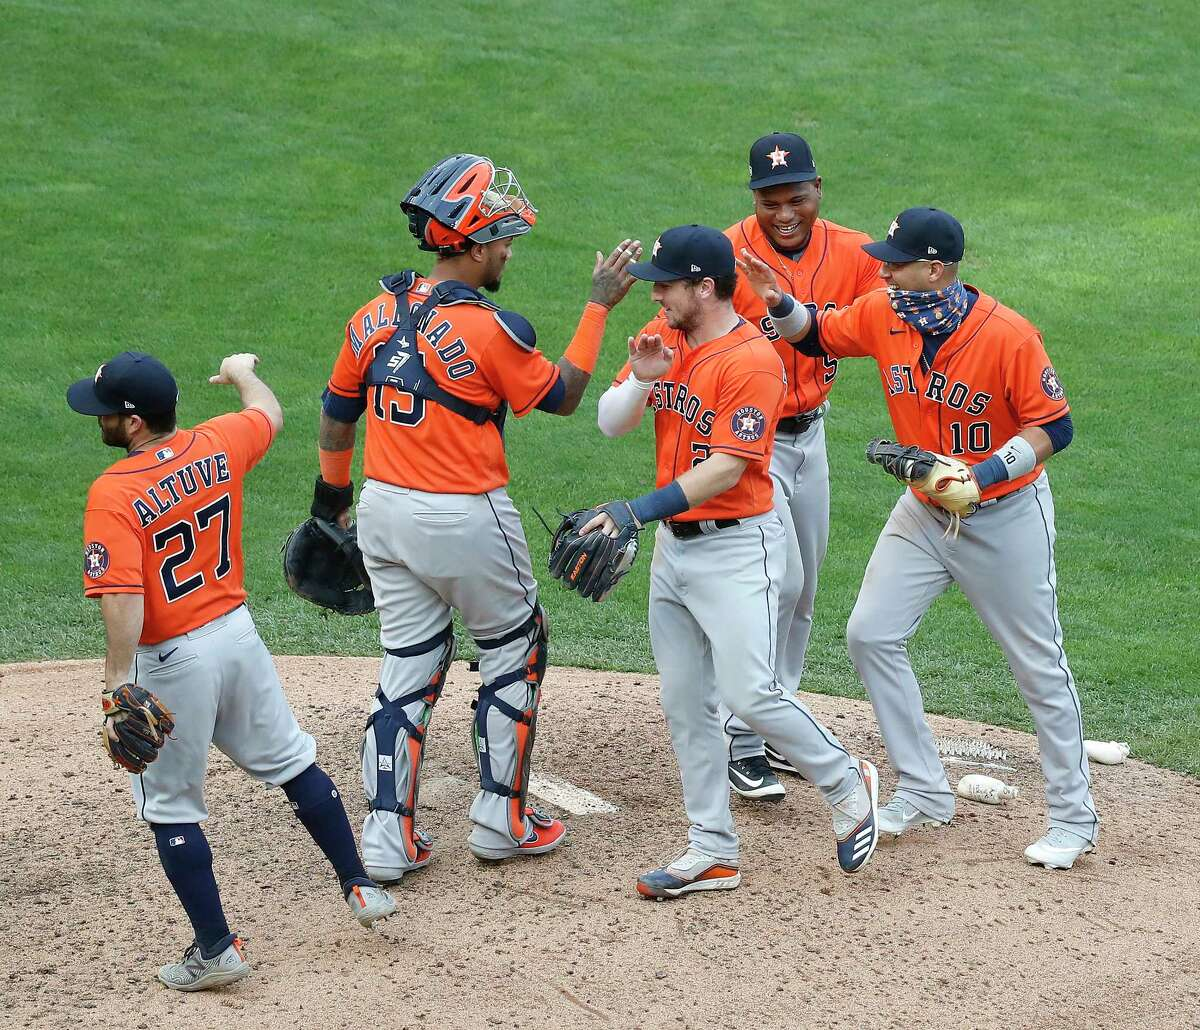 Houston Astros relief pitcher Framber Valdez (59) celebrates with catcher Martin Maldonado (15), Jose Altuve (27), Alex Bregman (2), and Yuli Gurriel (10) after the Astros 4-1 win over the Minnesota Twins after game one of an MLB Wild Card game at Target Field, Tuesday, September 29, 2020, in Minneapolis.